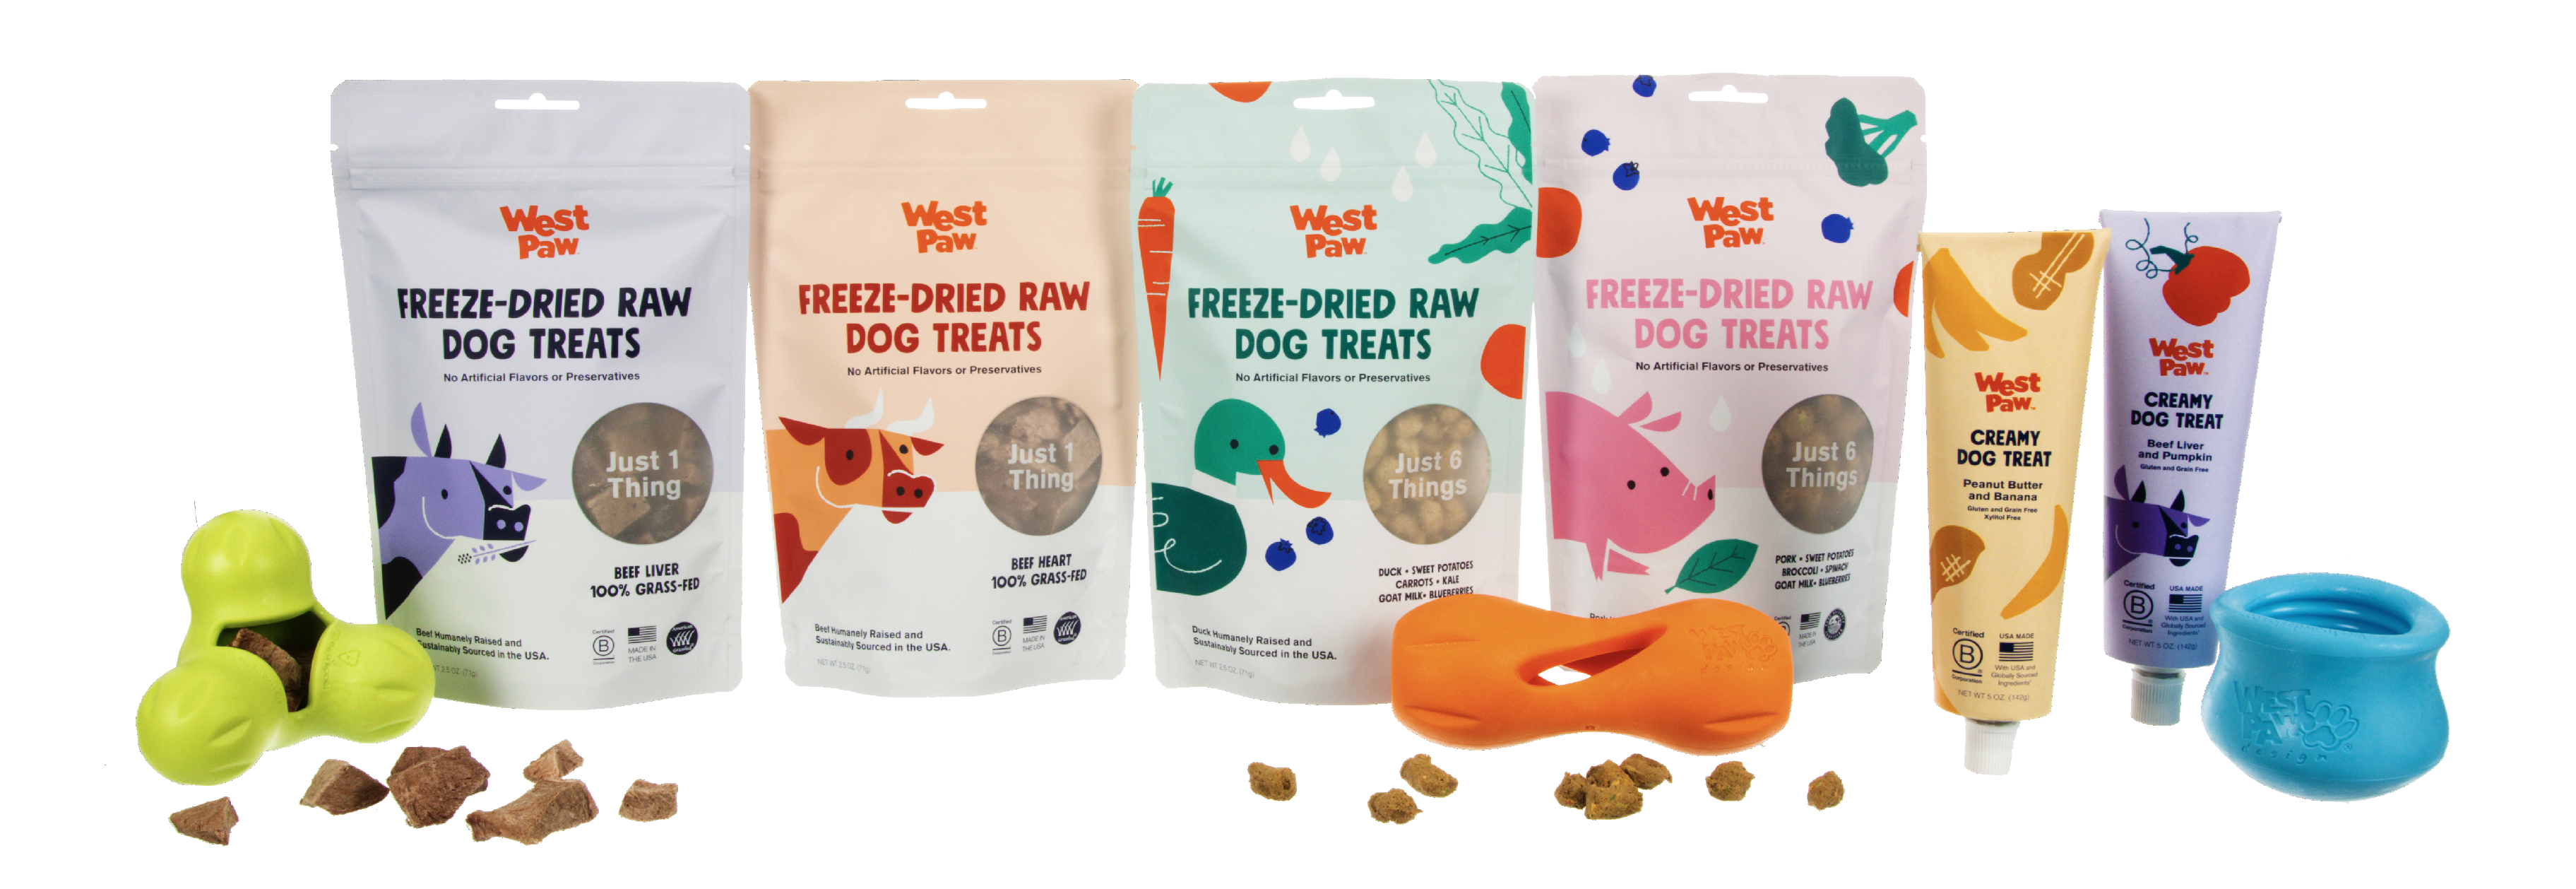 West Paw Announces Creamy Treats for Dogs